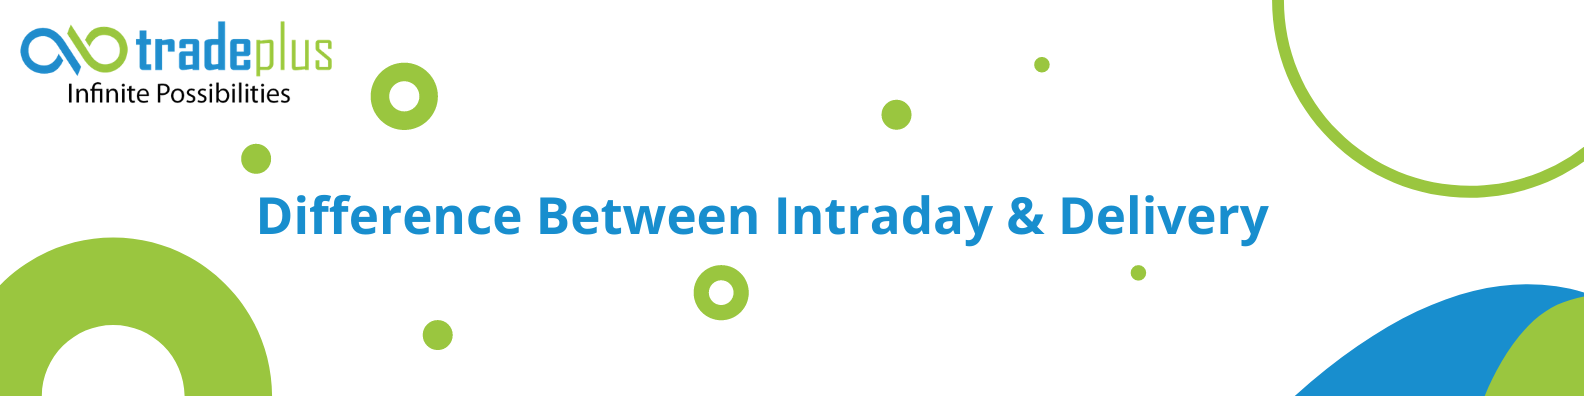 Difference between ntraday delivery 1 Difference between Intraday & Delivery Trades